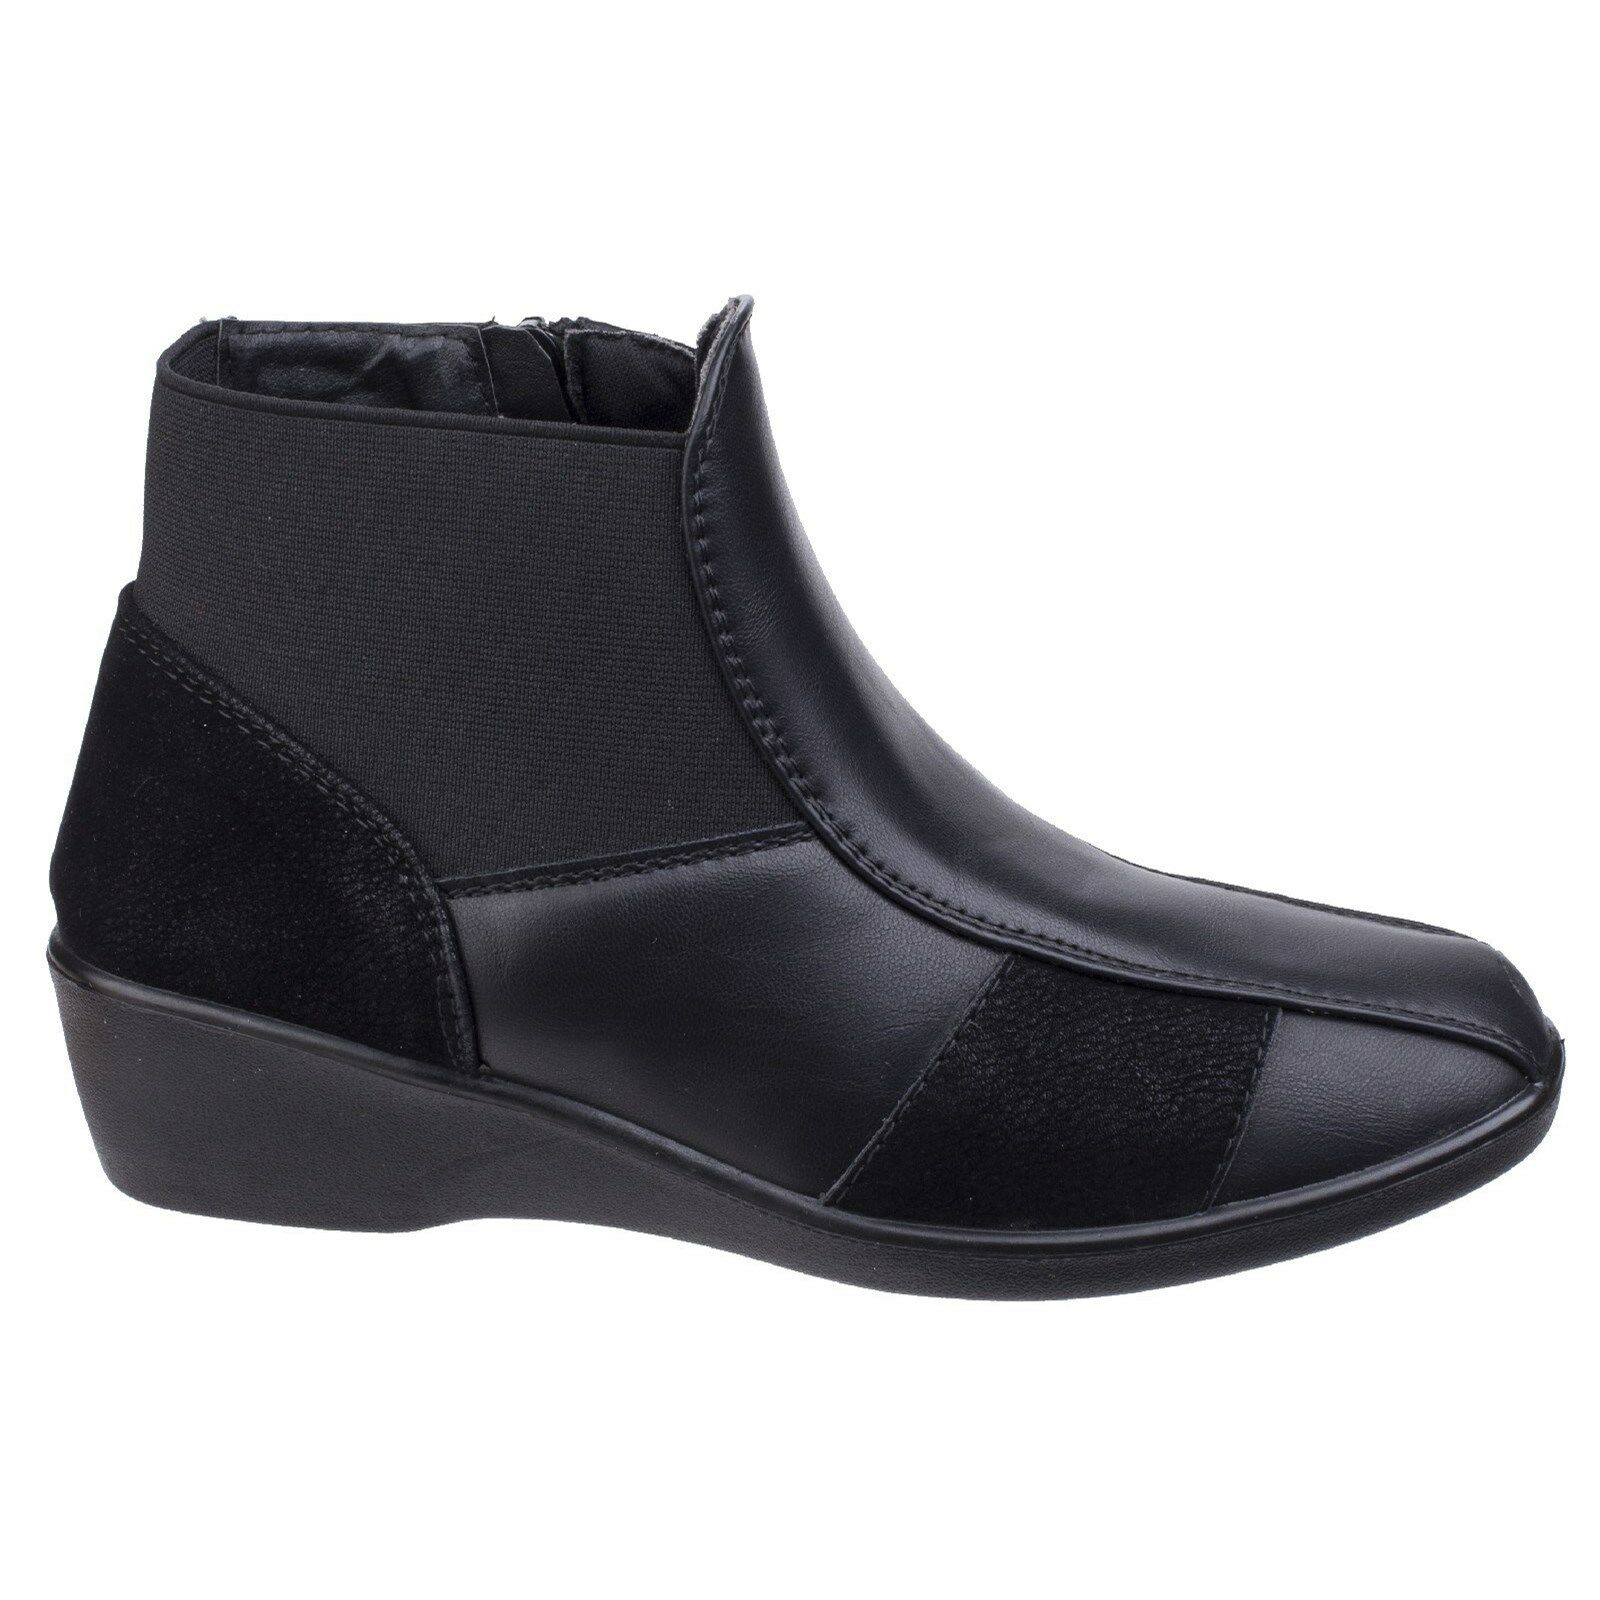 Fleet & Foster Festa Ankle Boots Low Low Low Wedge Pull On Ladies boots UK 3-8 Womens bbee9d